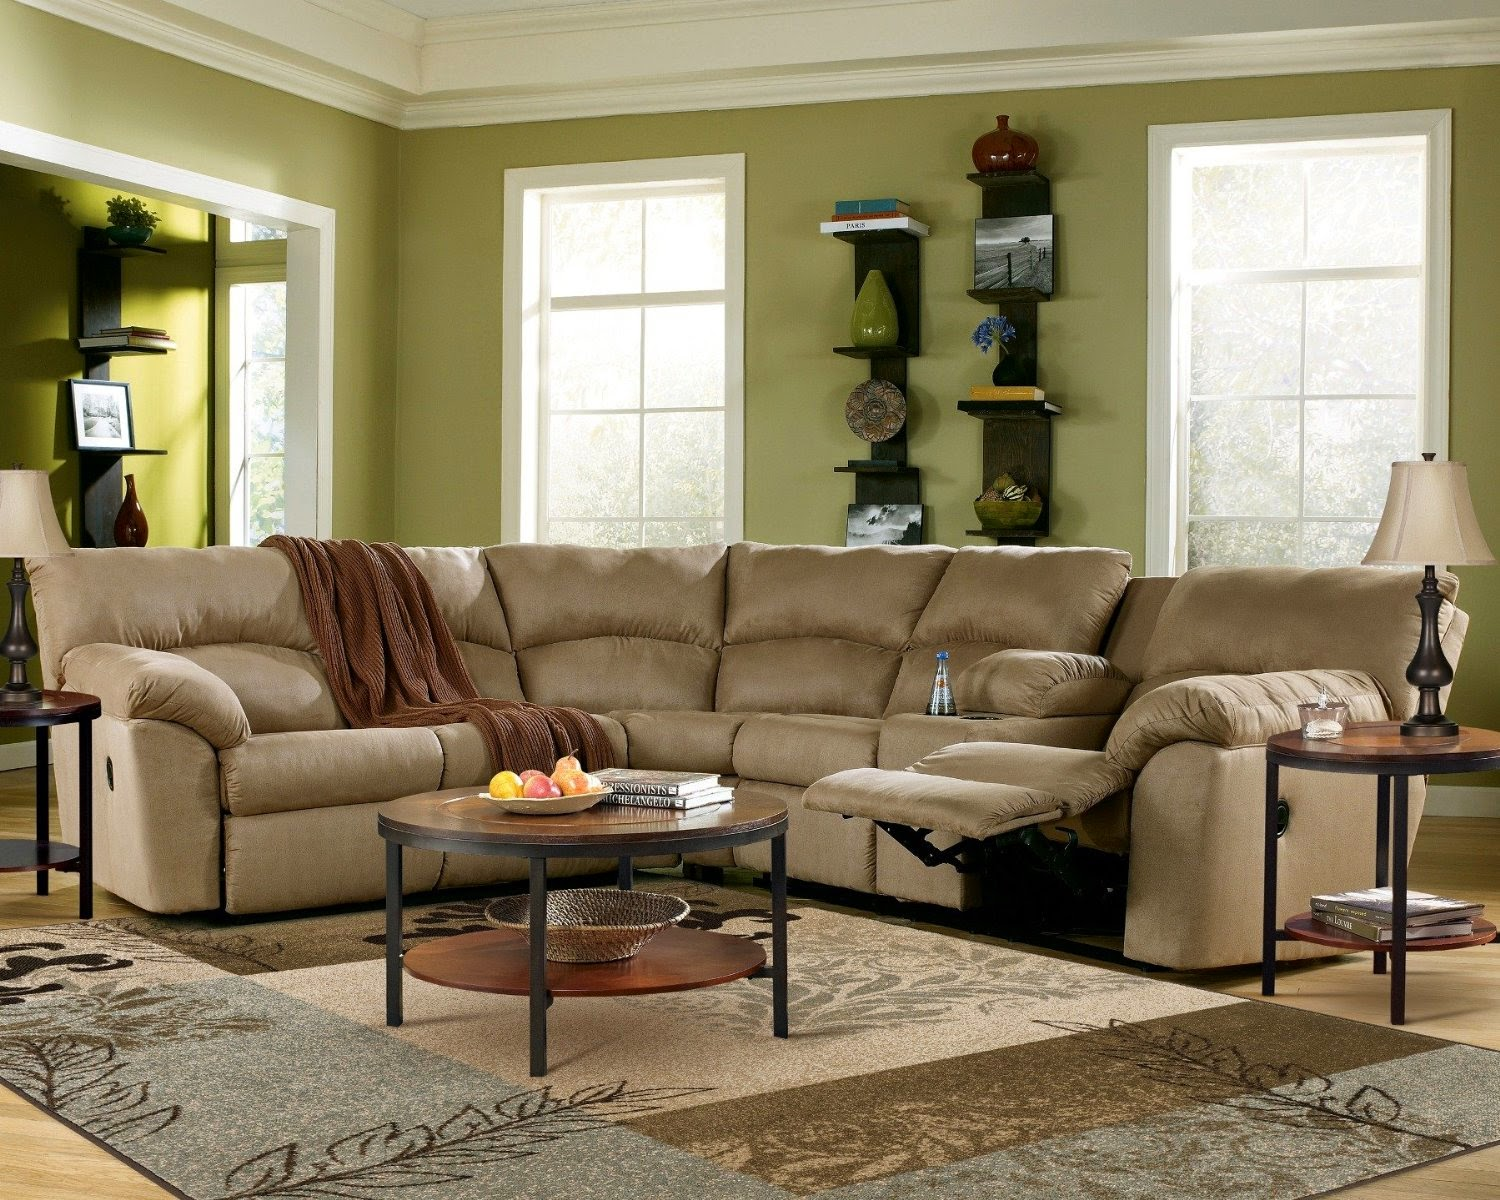 Reclining Sofa Sets Sale: Curved Leather Reclining Sofa And